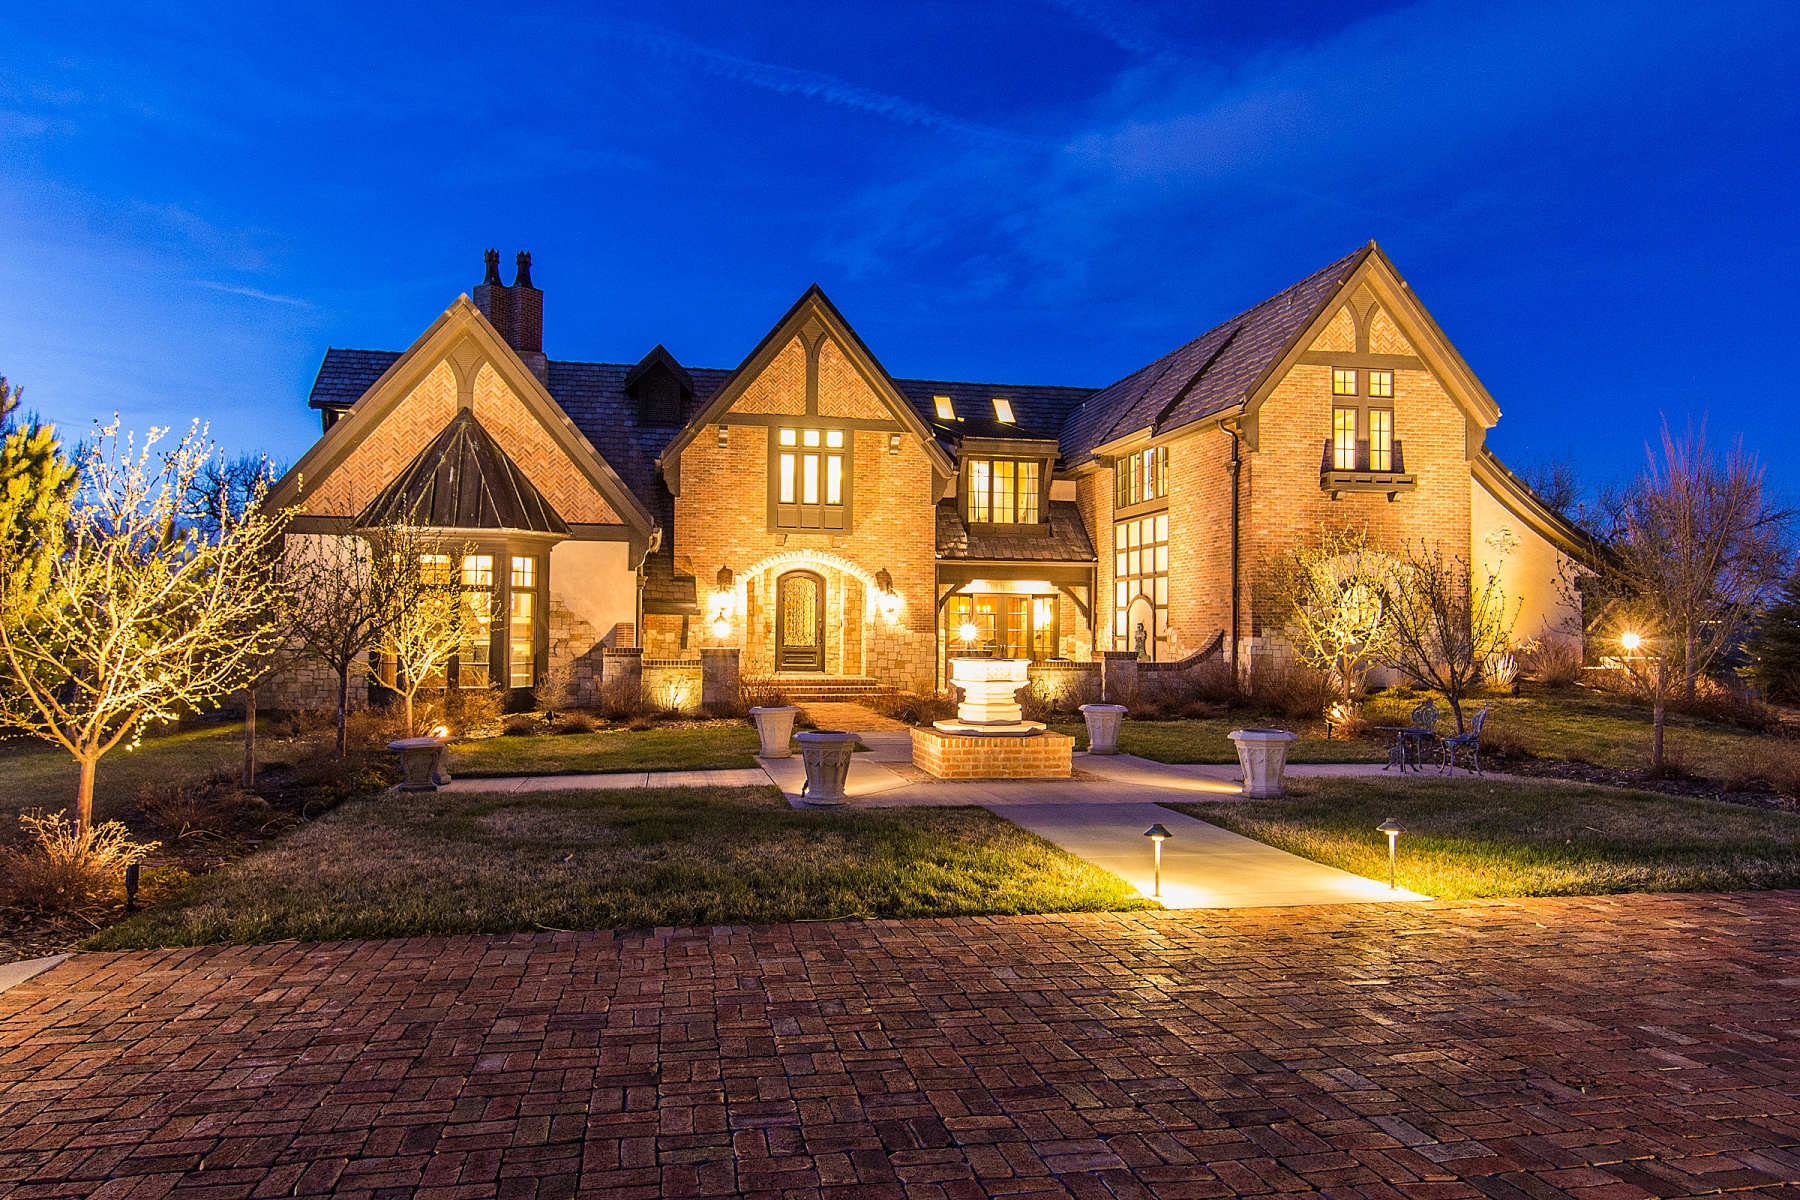 Casa Unifamiliar por un Venta en Magnificent English Tudor with brilliant architecture backing to Highline Canal 4251 Preserve Parkway North Greenwood Village, Colorado 80121 Estados Unidos